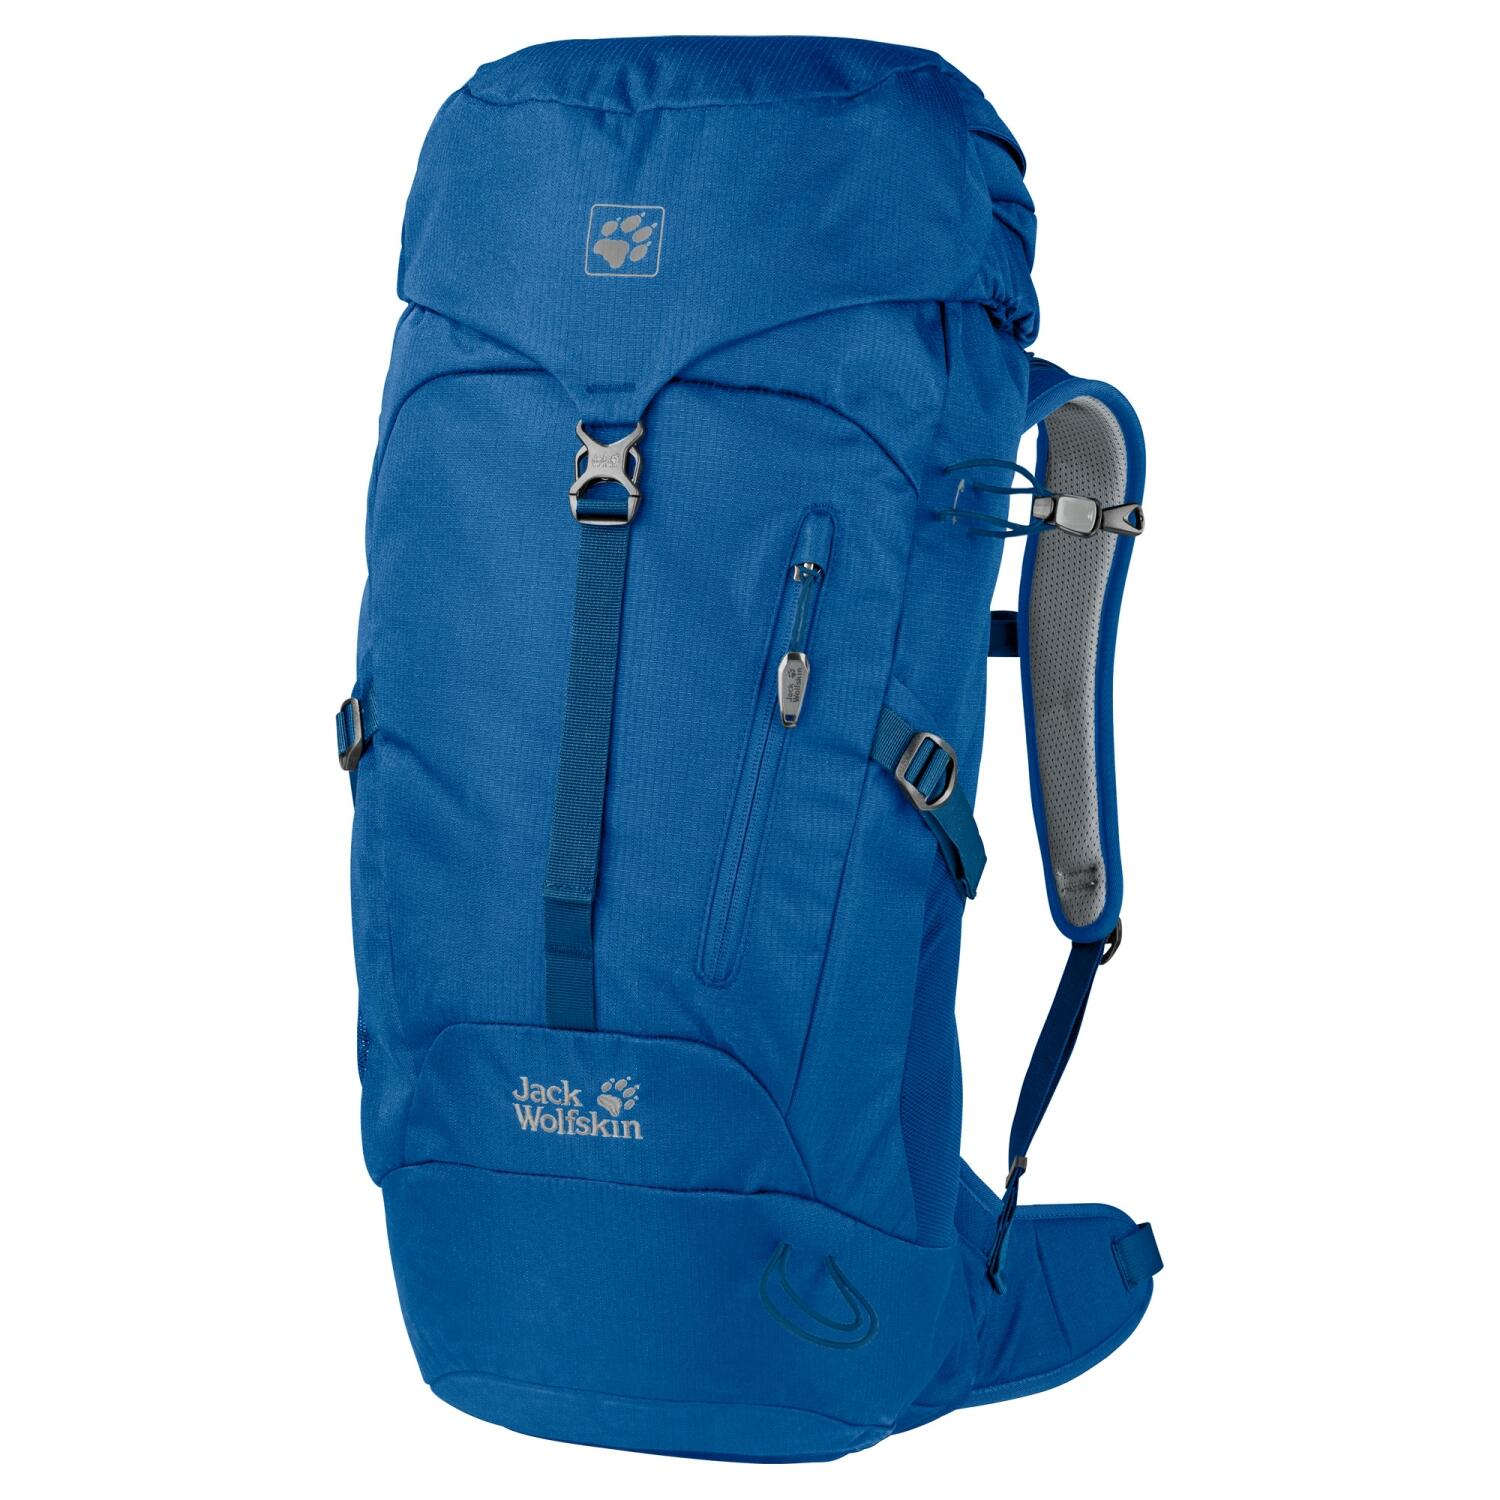 jack-wolfskin-astro-26-pack-rucksack-farbe-1062-electric-blue-